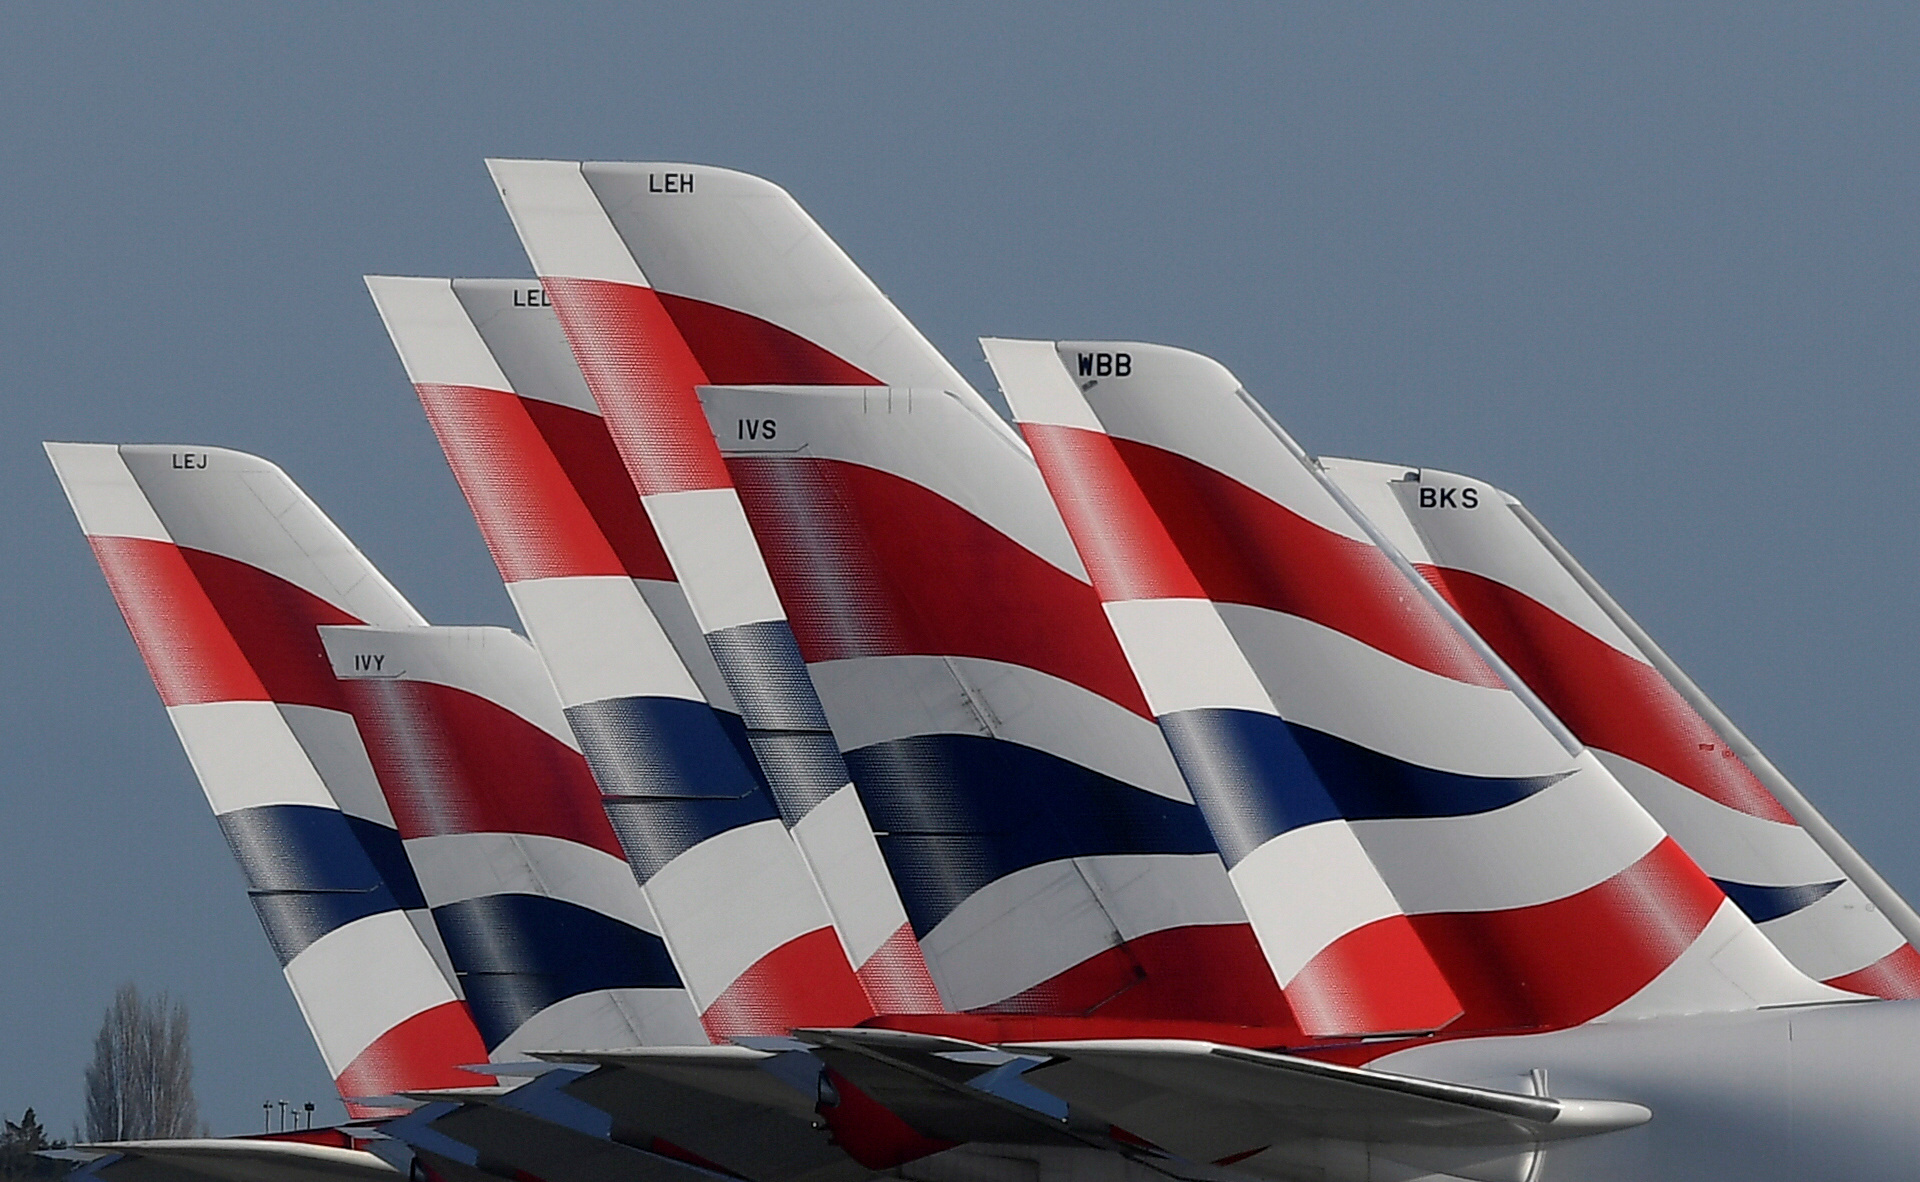 FILE PHOTO: Tail Fins of British Airways planes are seen parked at Heathrow airport as the spread of the coronavirus disease (COVID-19) continues, London, Britain, March 31, 2020. REUTERS/Toby Melville/File Photo